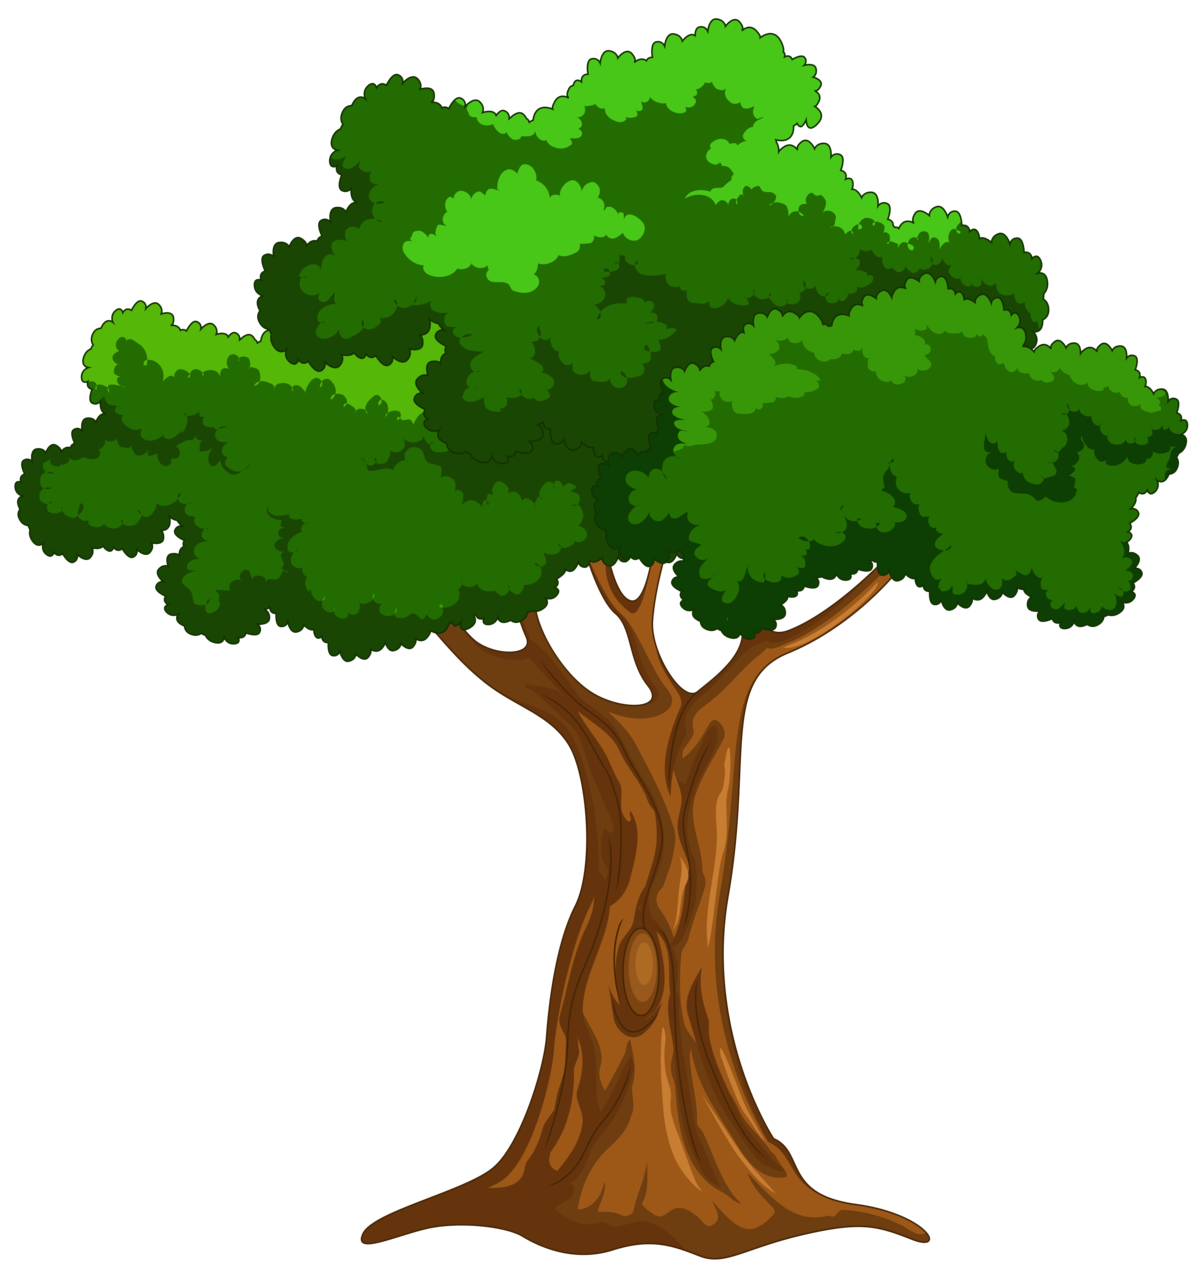 Treepng clipart picture freeuse Cartoon Tree PNG Clip Art picture freeuse